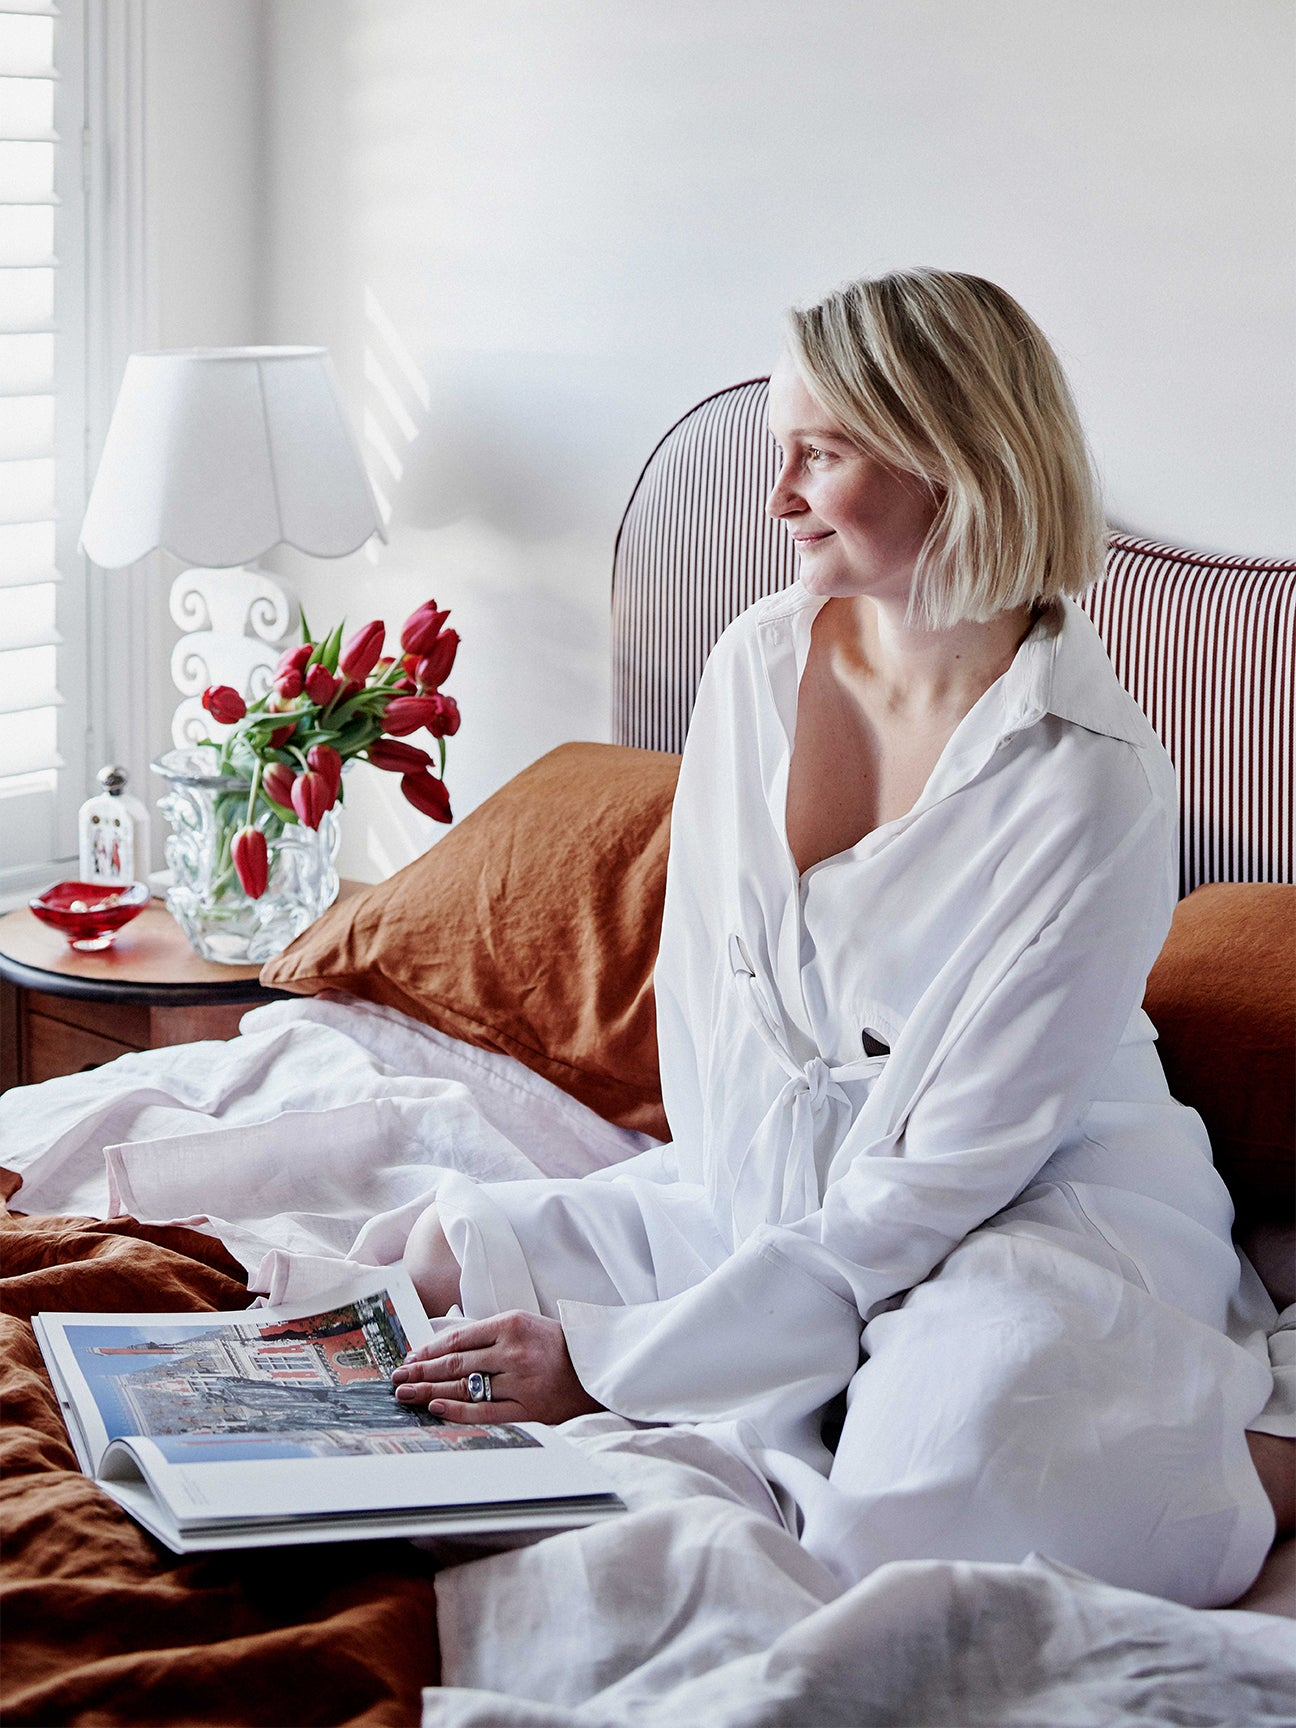 Woman on bed in white bathrobe.